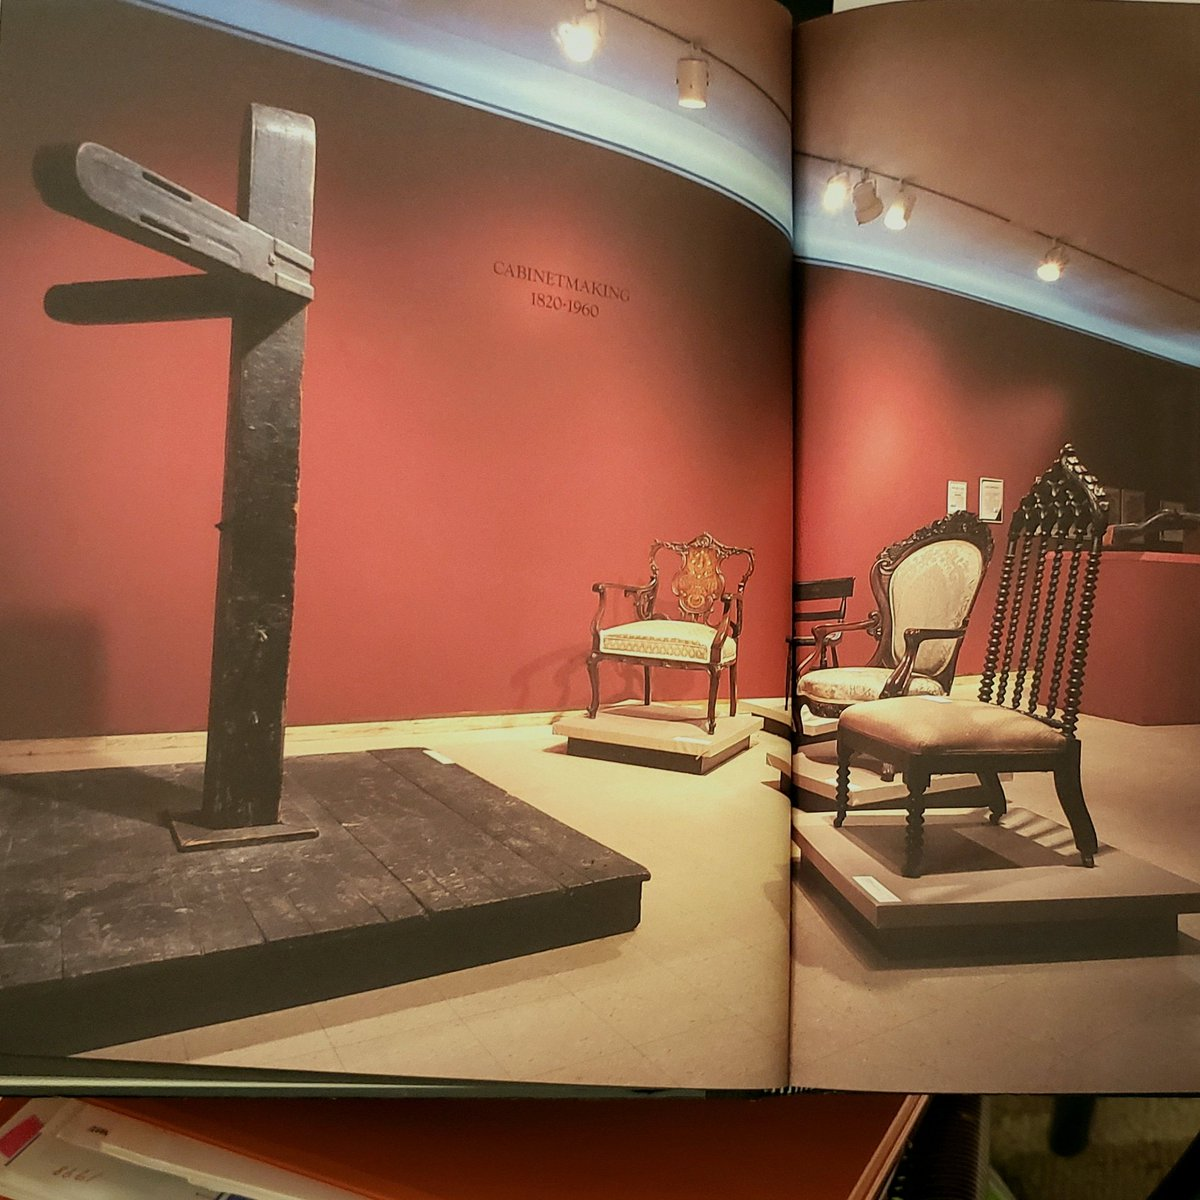 Installation Of A Baltimore Whipping Post Surrounded By Four Onate 19th Century Chairs